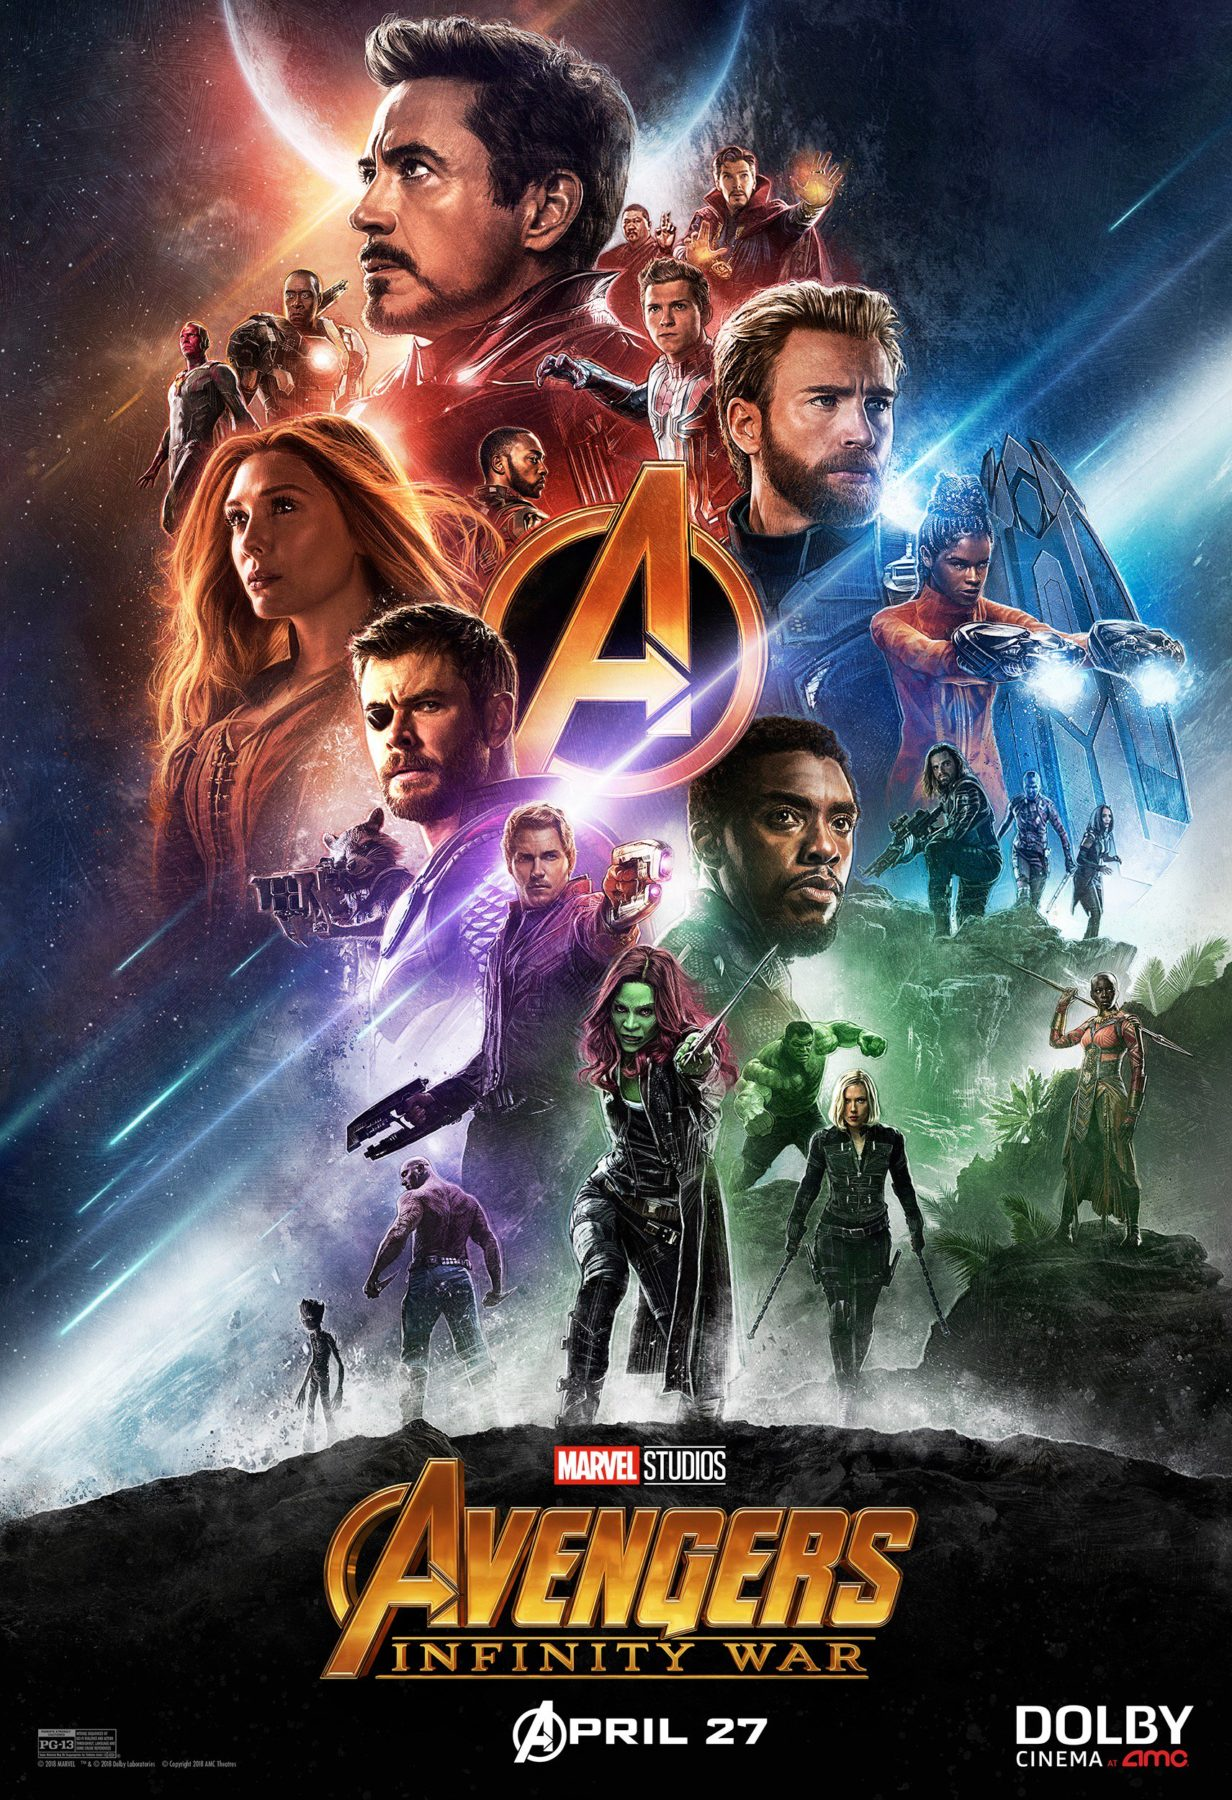 marvel's avengers: infinity war gets two new posters